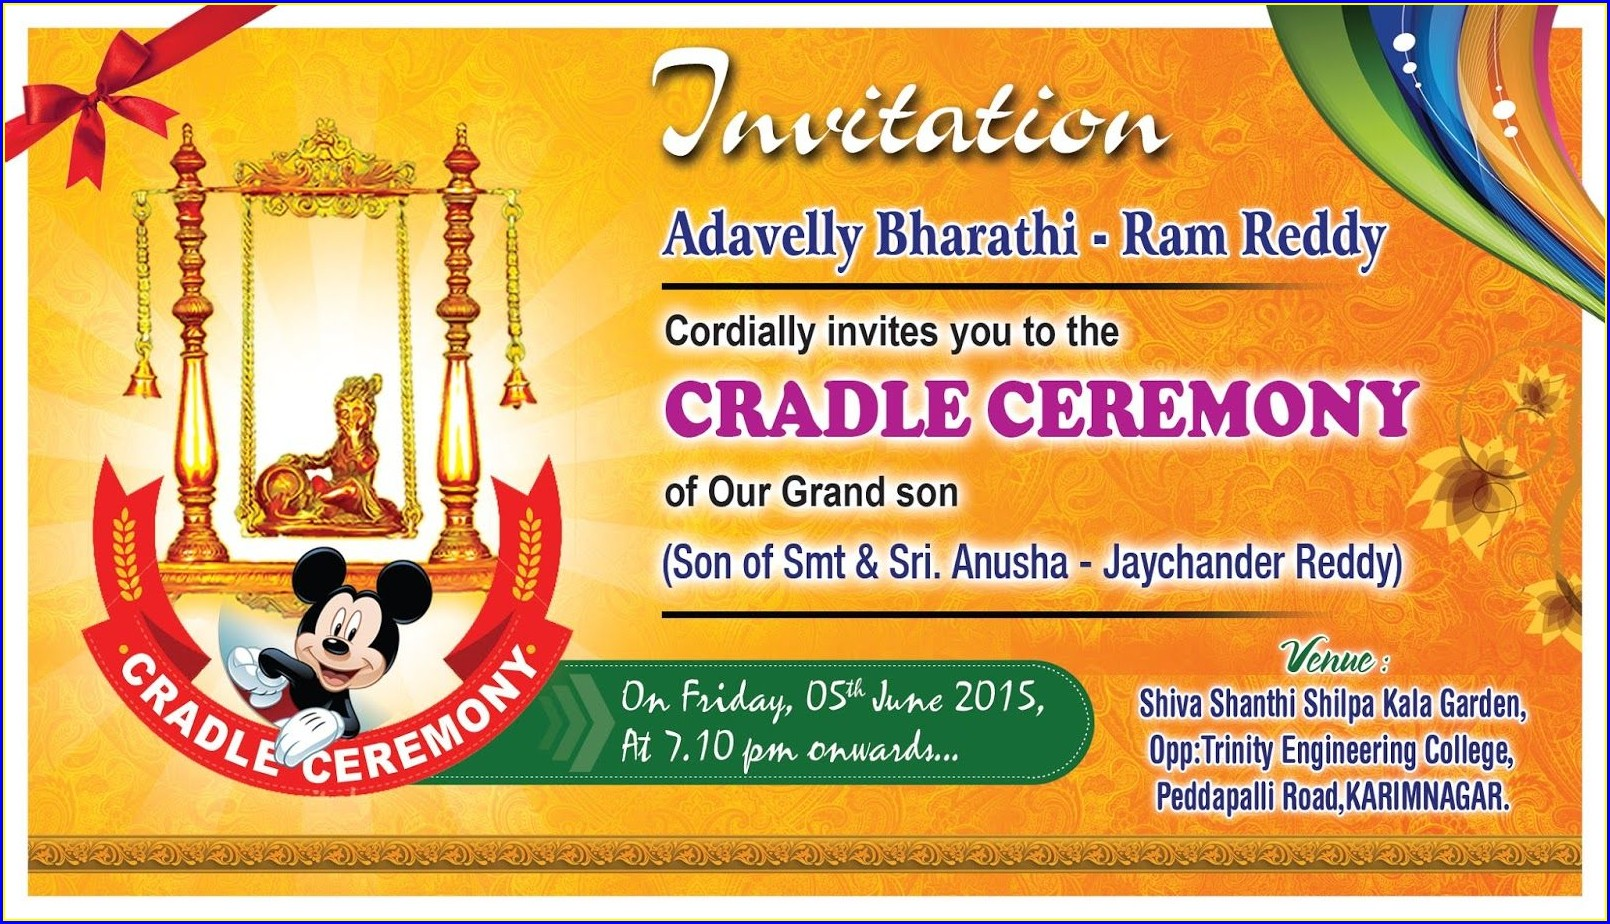 Cradle Ceremony Invitation Cards In Telugu